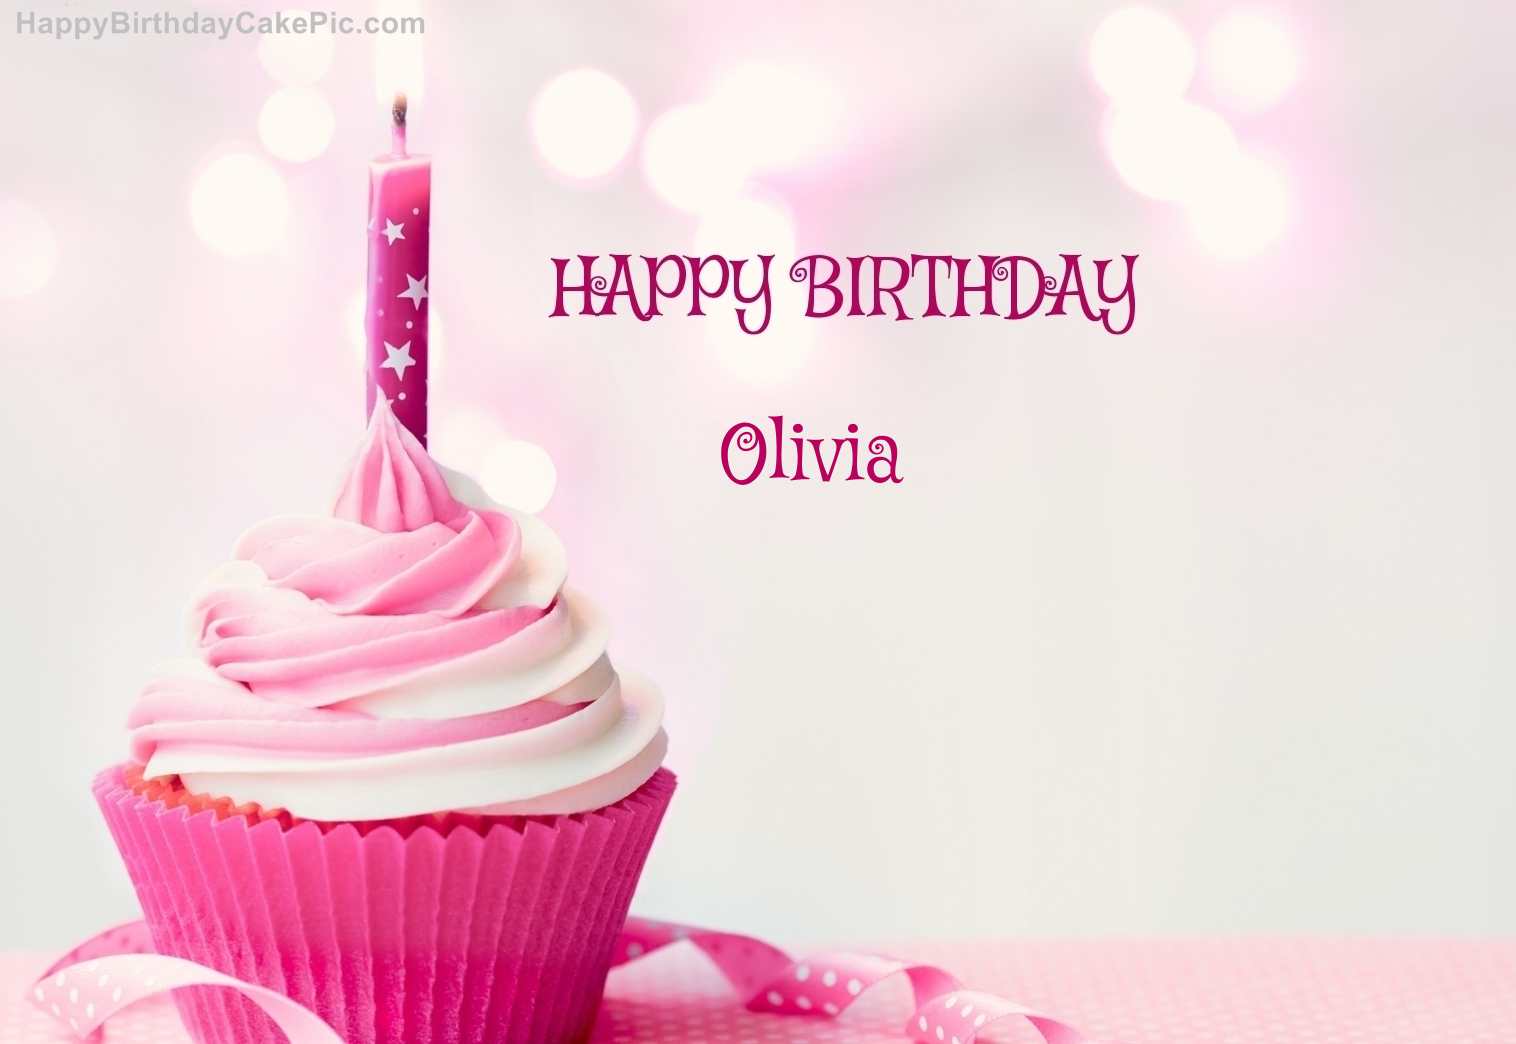 Happy Birthday Olivia Cake